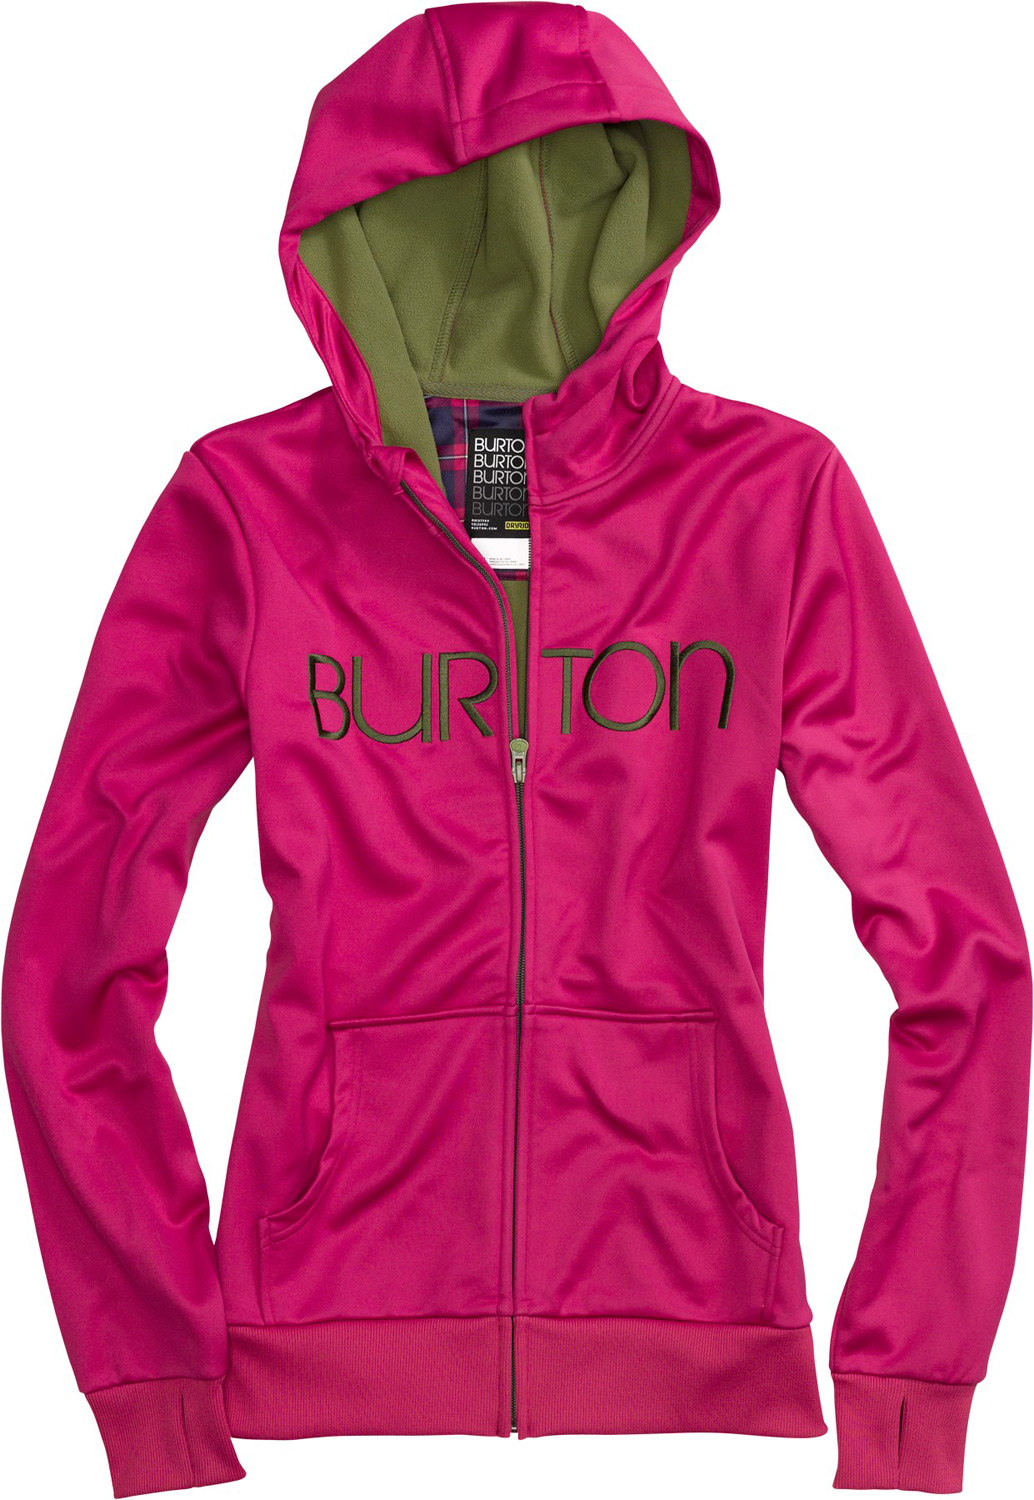 Snowboard Four scoops of fleece with all the sweet toppings-quick-drying heat for mountain or street.Key Features of the Burton Scoop Hoodie: DRYRIDE Thermex™ Bonded Fleece Fulltime Hood Kangaroo Handwarmer Pockets Sound Pocket with Headphone Cable Port Ribbed Thumbhole Cuffs and Hem - $79.95